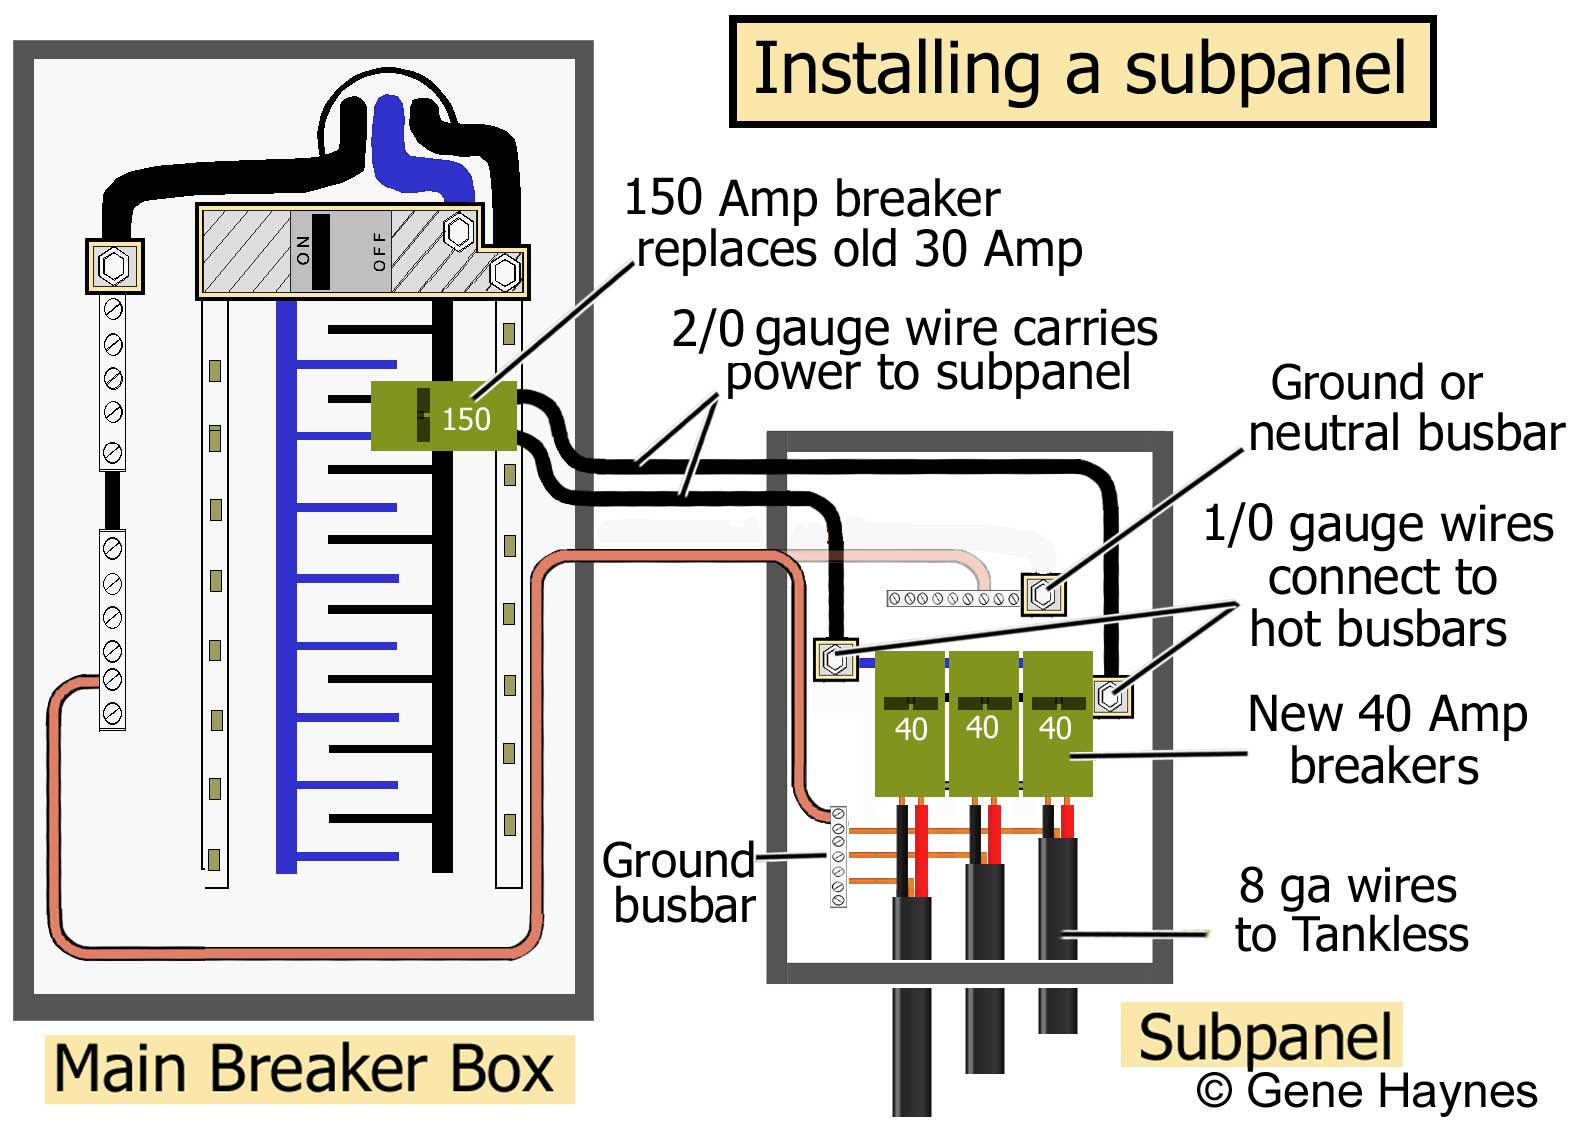 40 amp breaker wiring diagram how to wire tankless electric water heater larger image of 240 volt subpanel